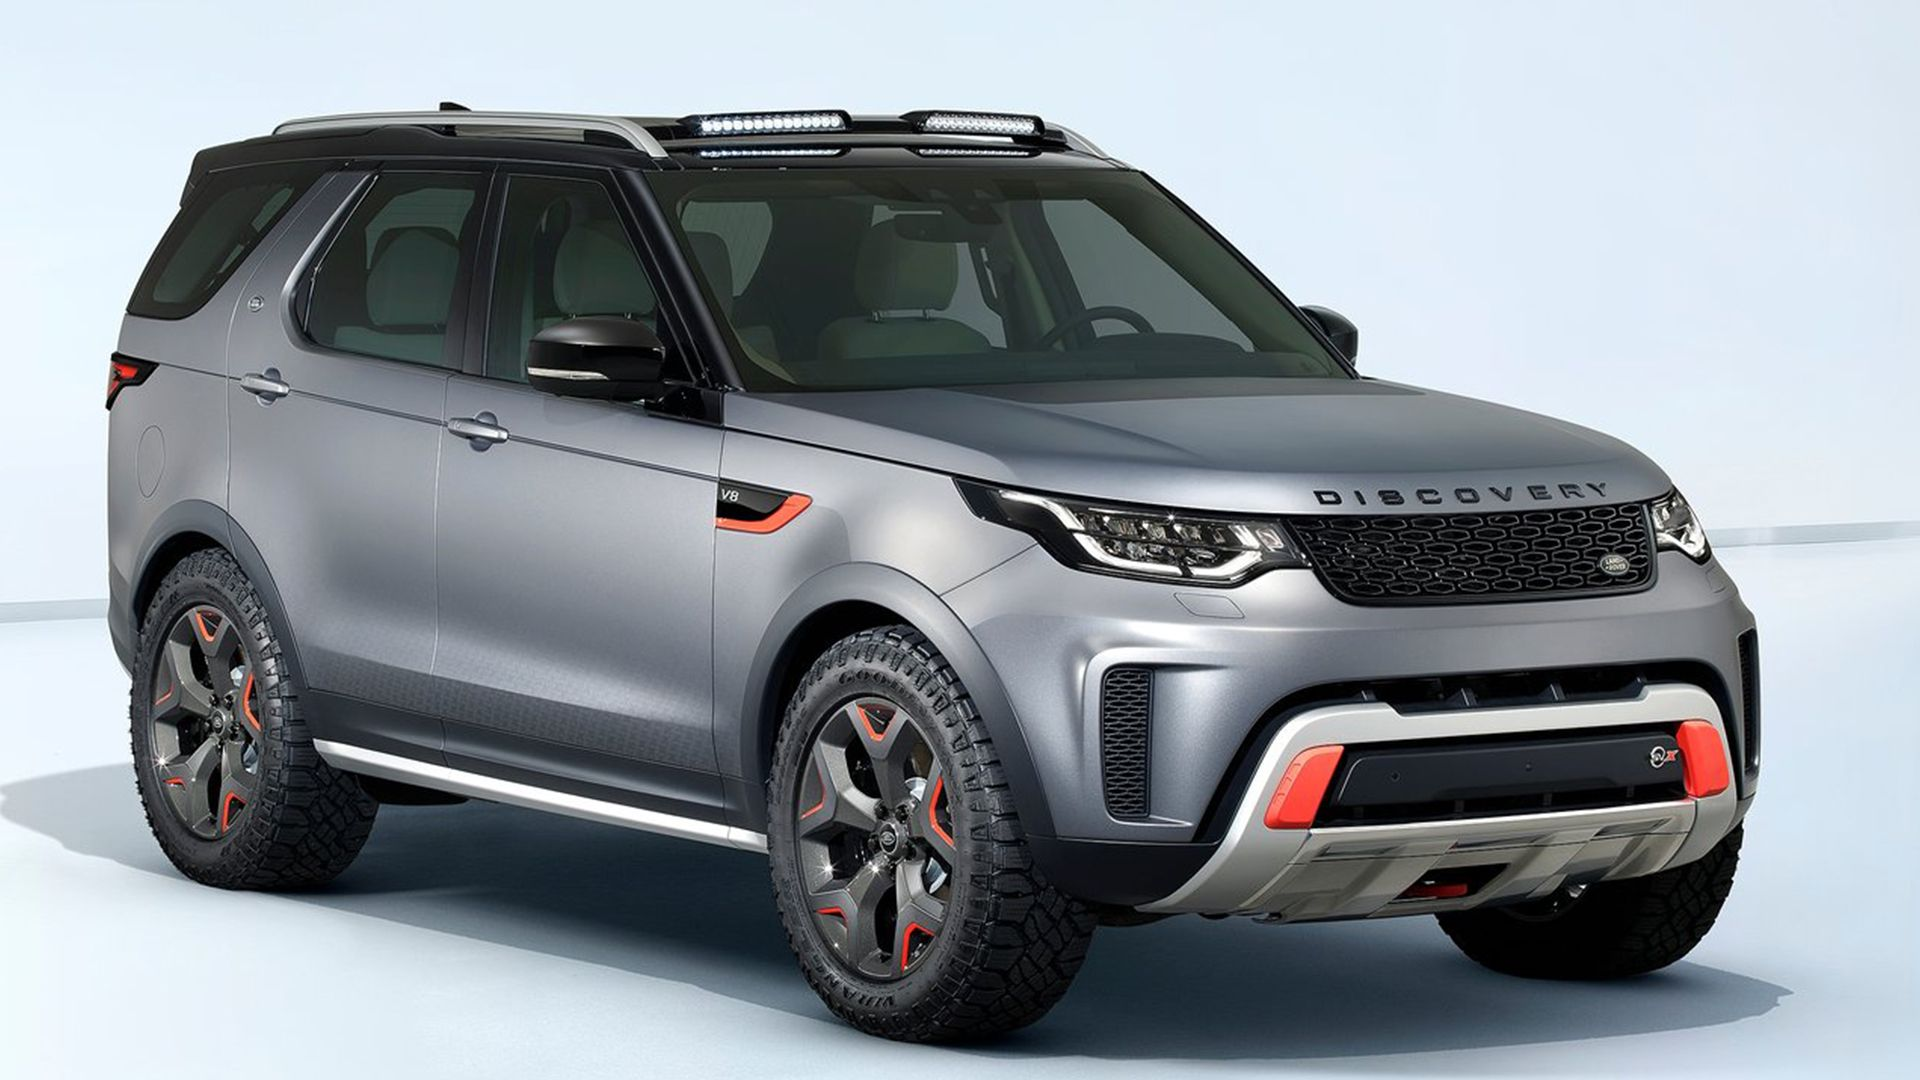 2018 Land Rover Discovery Off Road Suv About Sports Car Land Rover Discovery Land Rover Rover Discovery